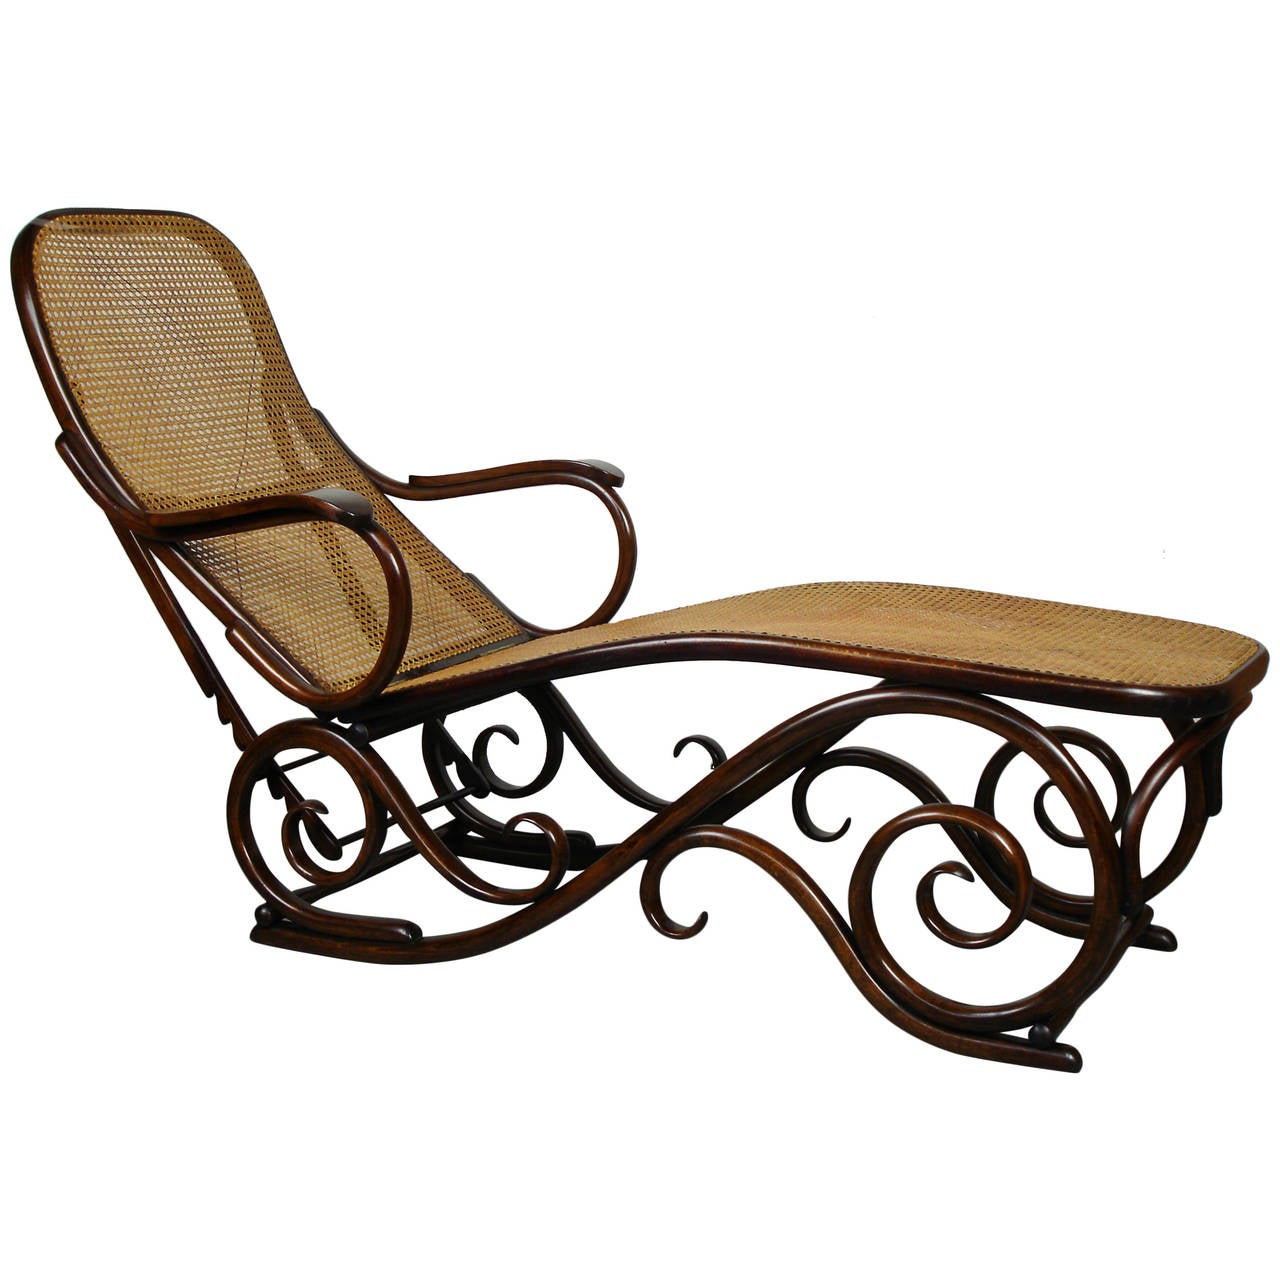 Bent wood chaise longue attributed to thonet at 1stdibs for Chaise thonet